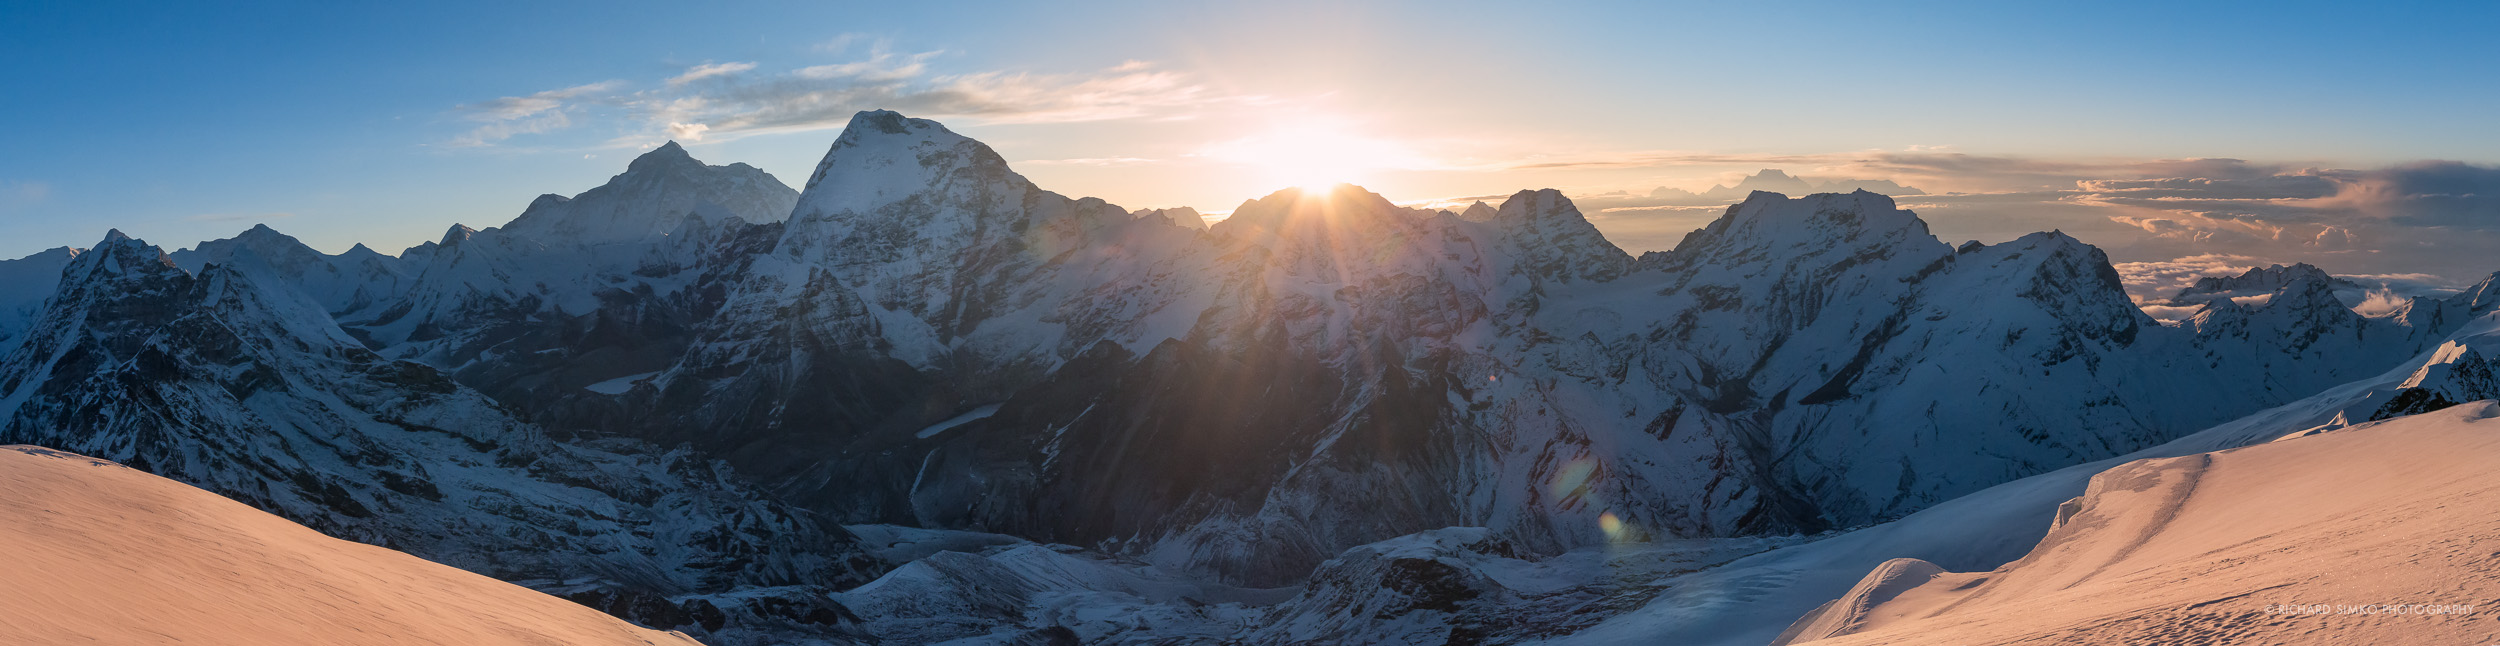 Makalu range in the morning sunrise. The high peak in front is Chamlang and one to the left is Makalu.